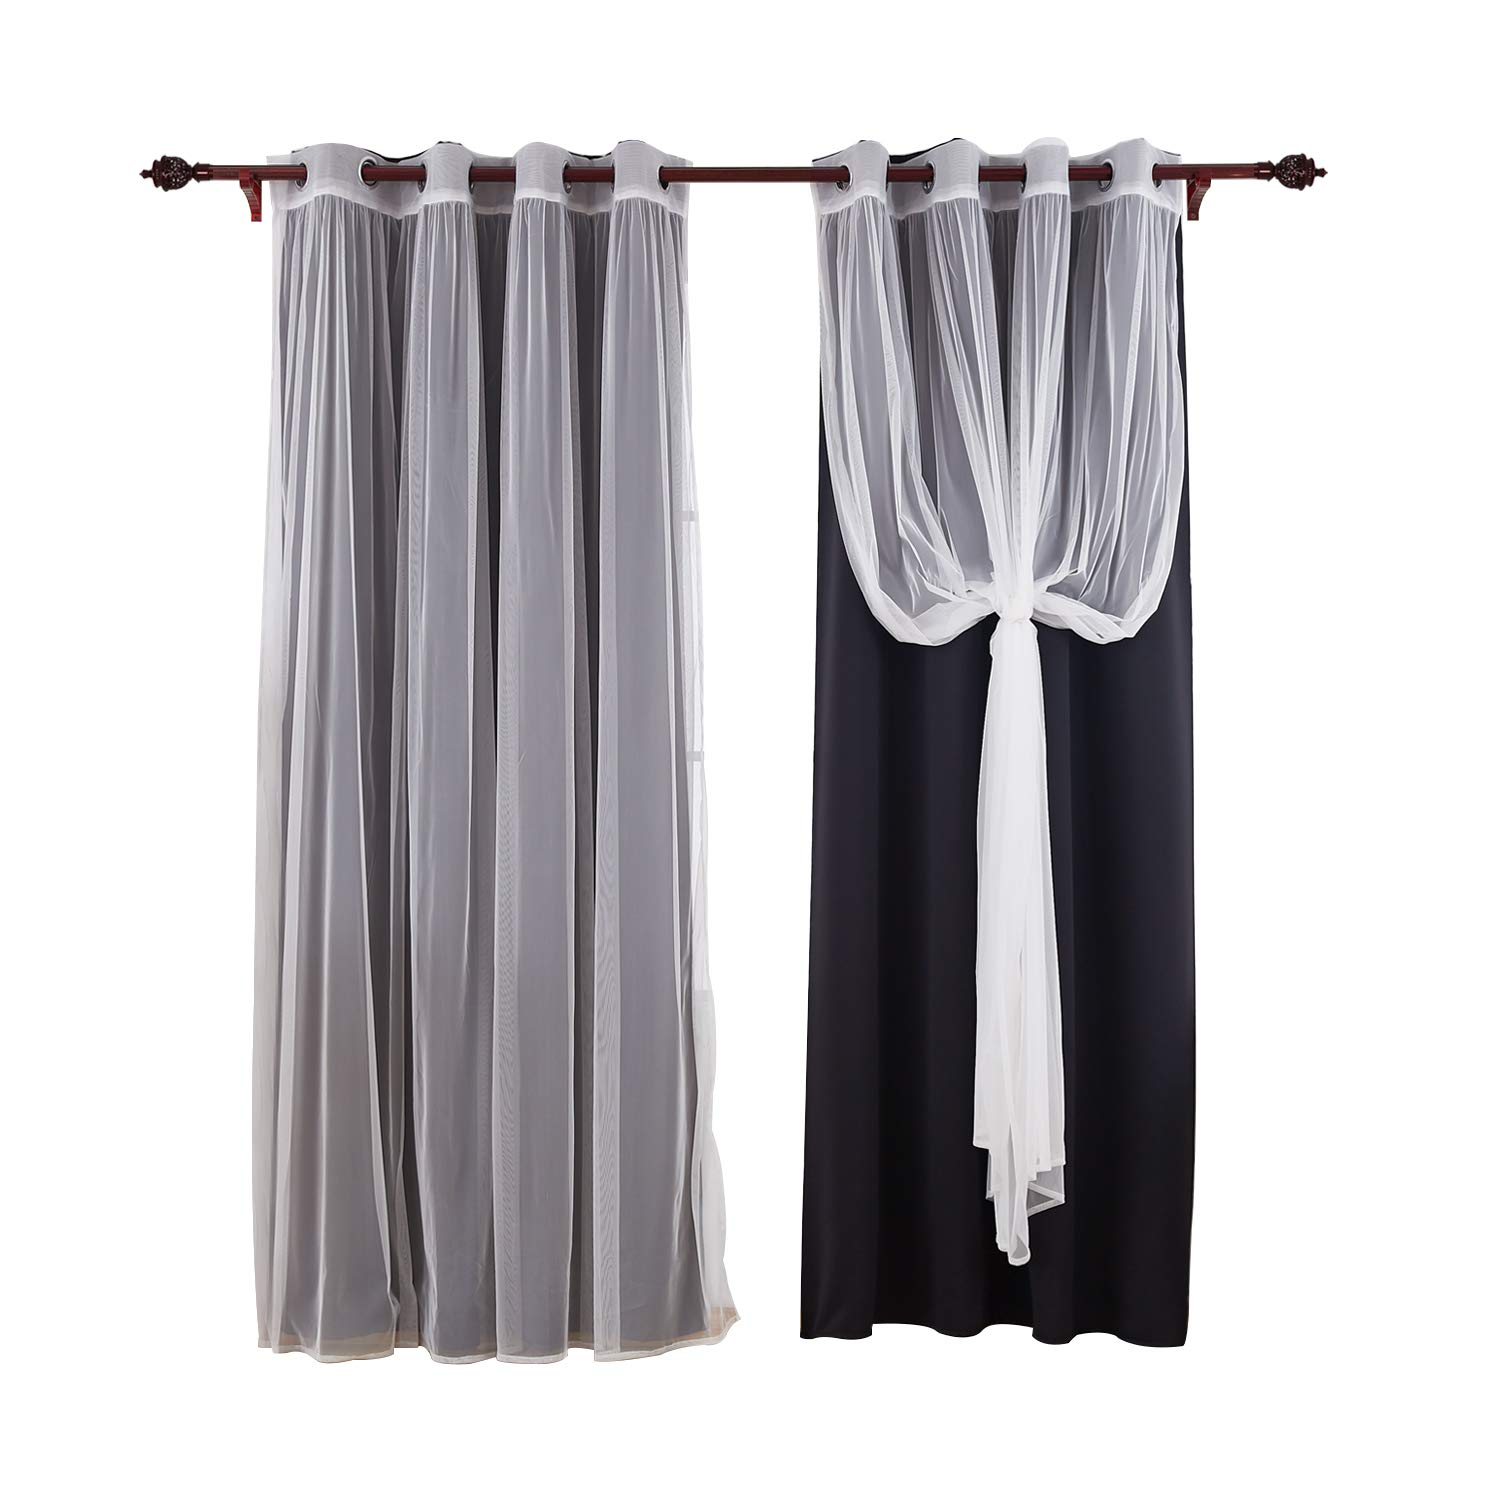 Deconovo Grommet Thermal Insulated Curtains Mix and Match Curtains Blackout Drapes and Tulle Lace Sheer Curtain Panels For Living Room Chocolate Two Pairs 52 X 63 Inch (Two Blackout Curtains and Two Sheer Curtains)